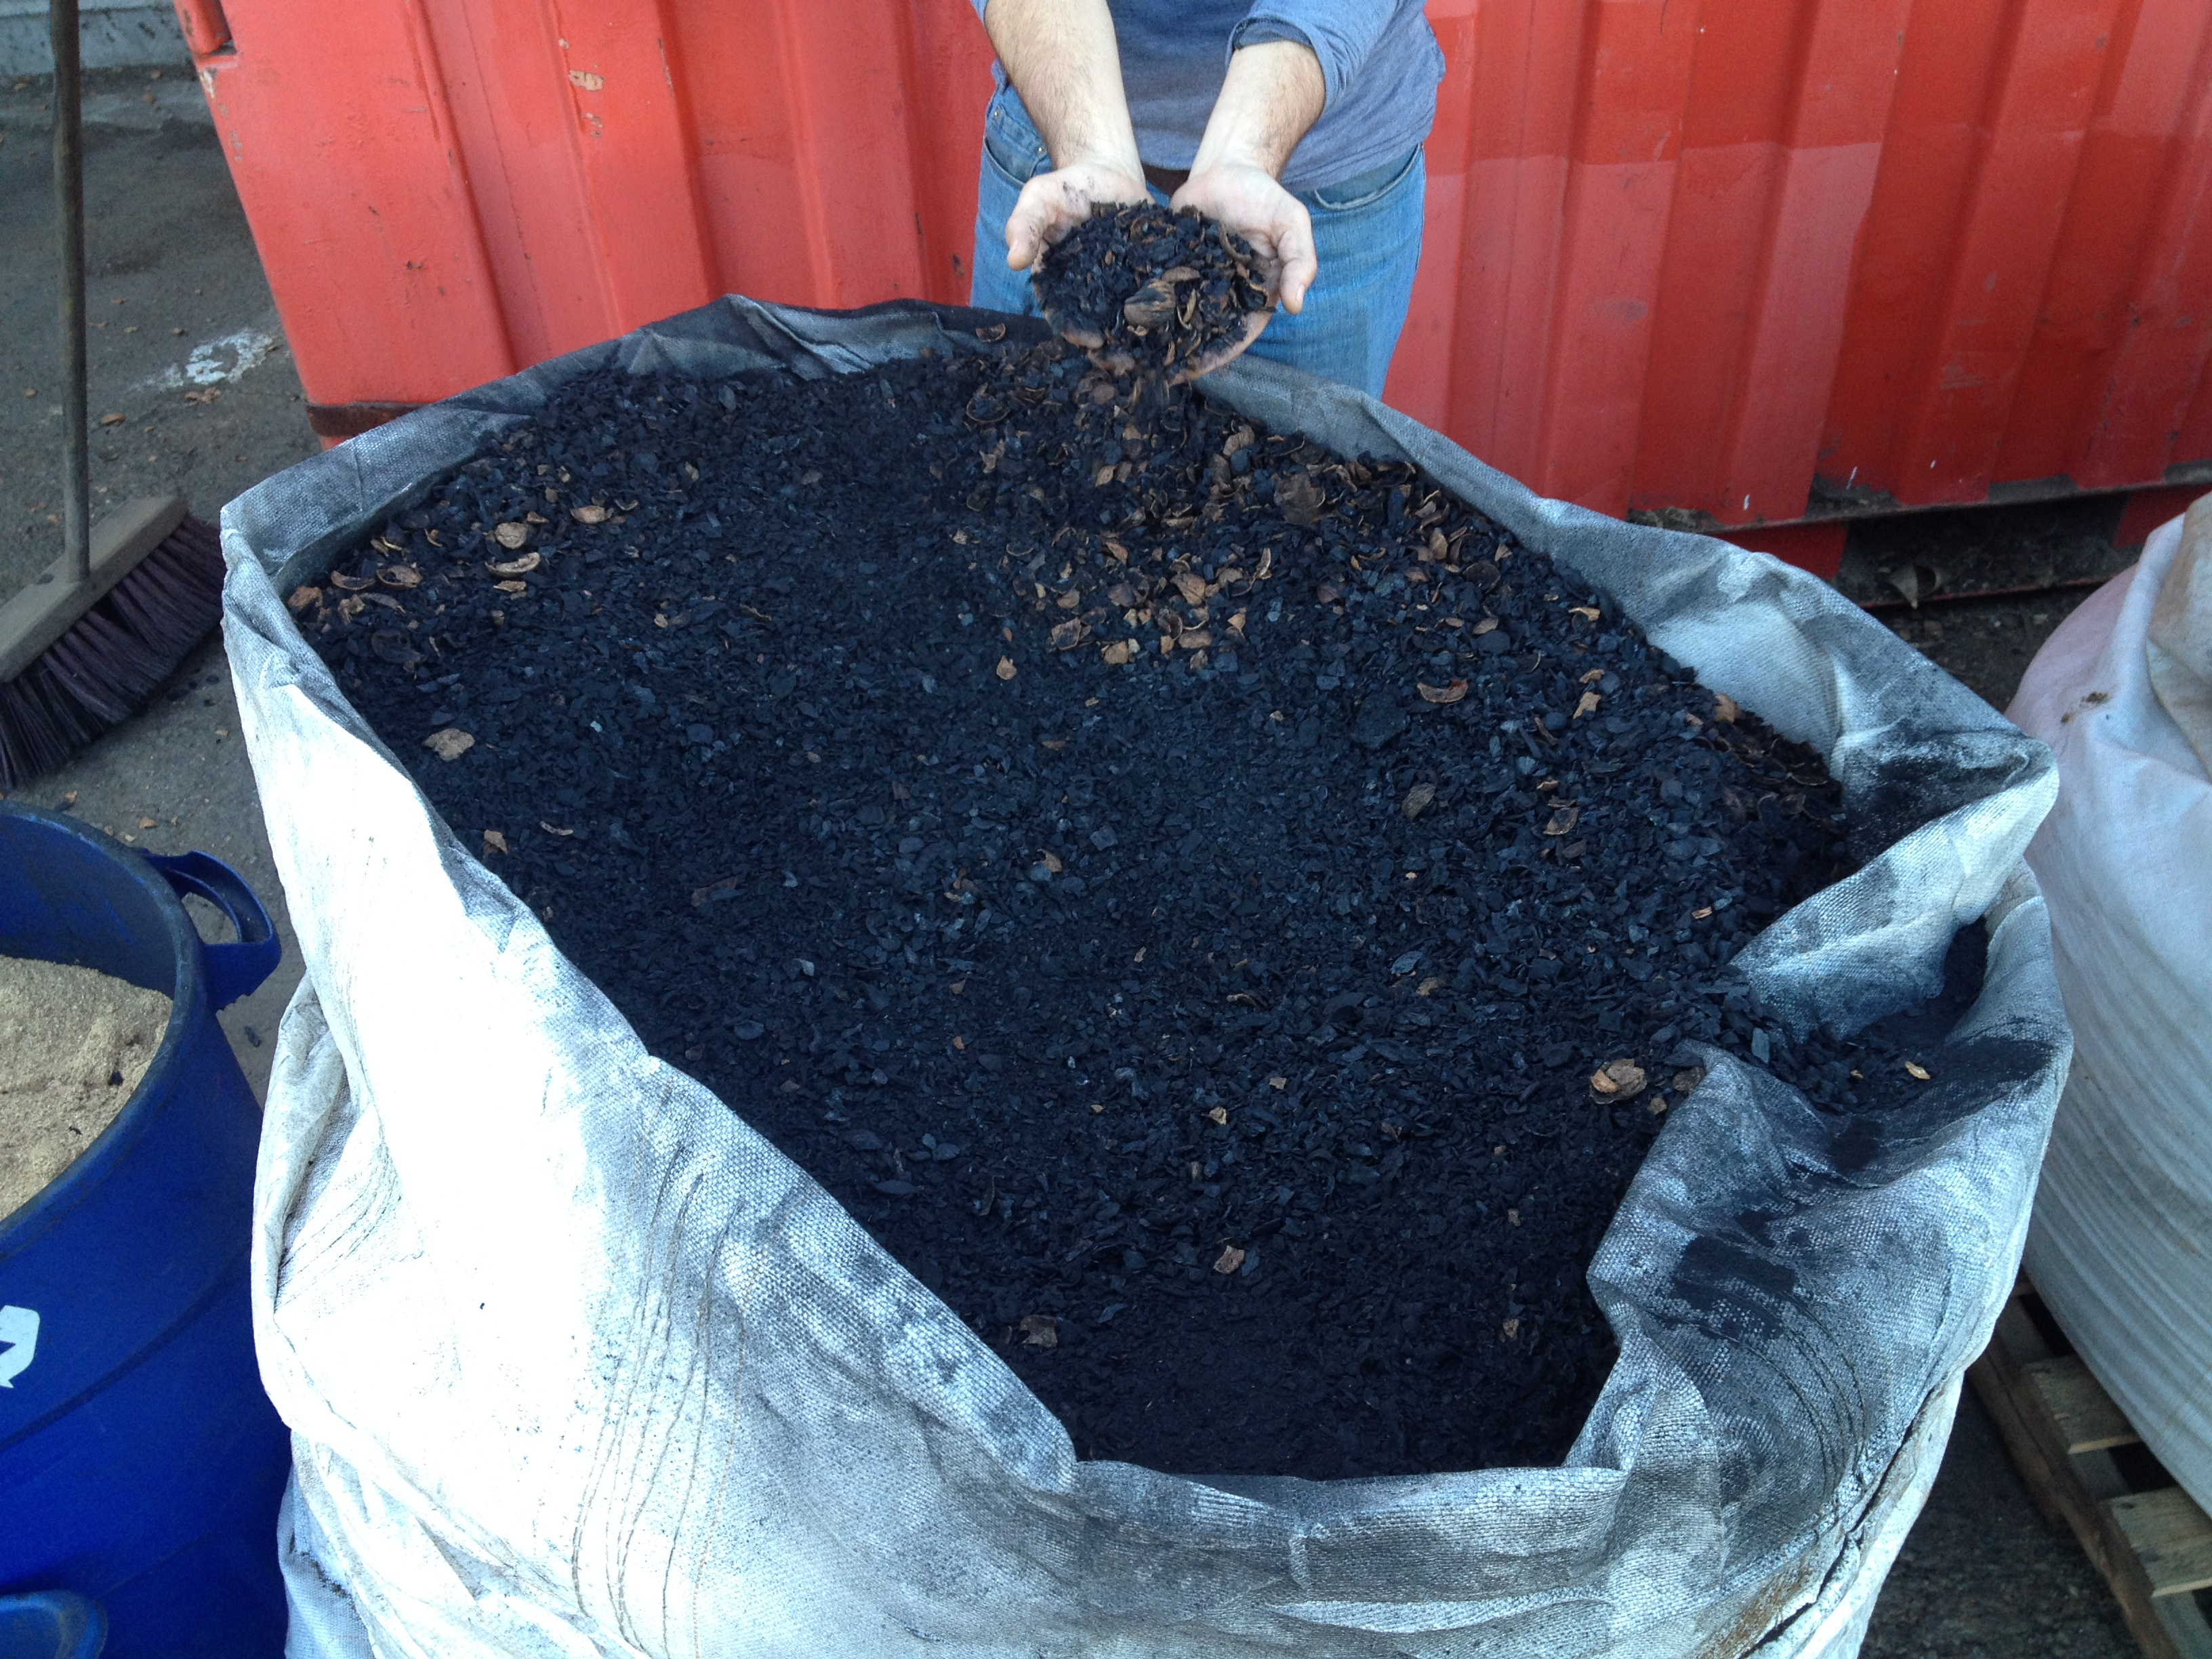 The by-product of the gasifiers is that they produce biochar, which can be added to soil as a fertilizer.